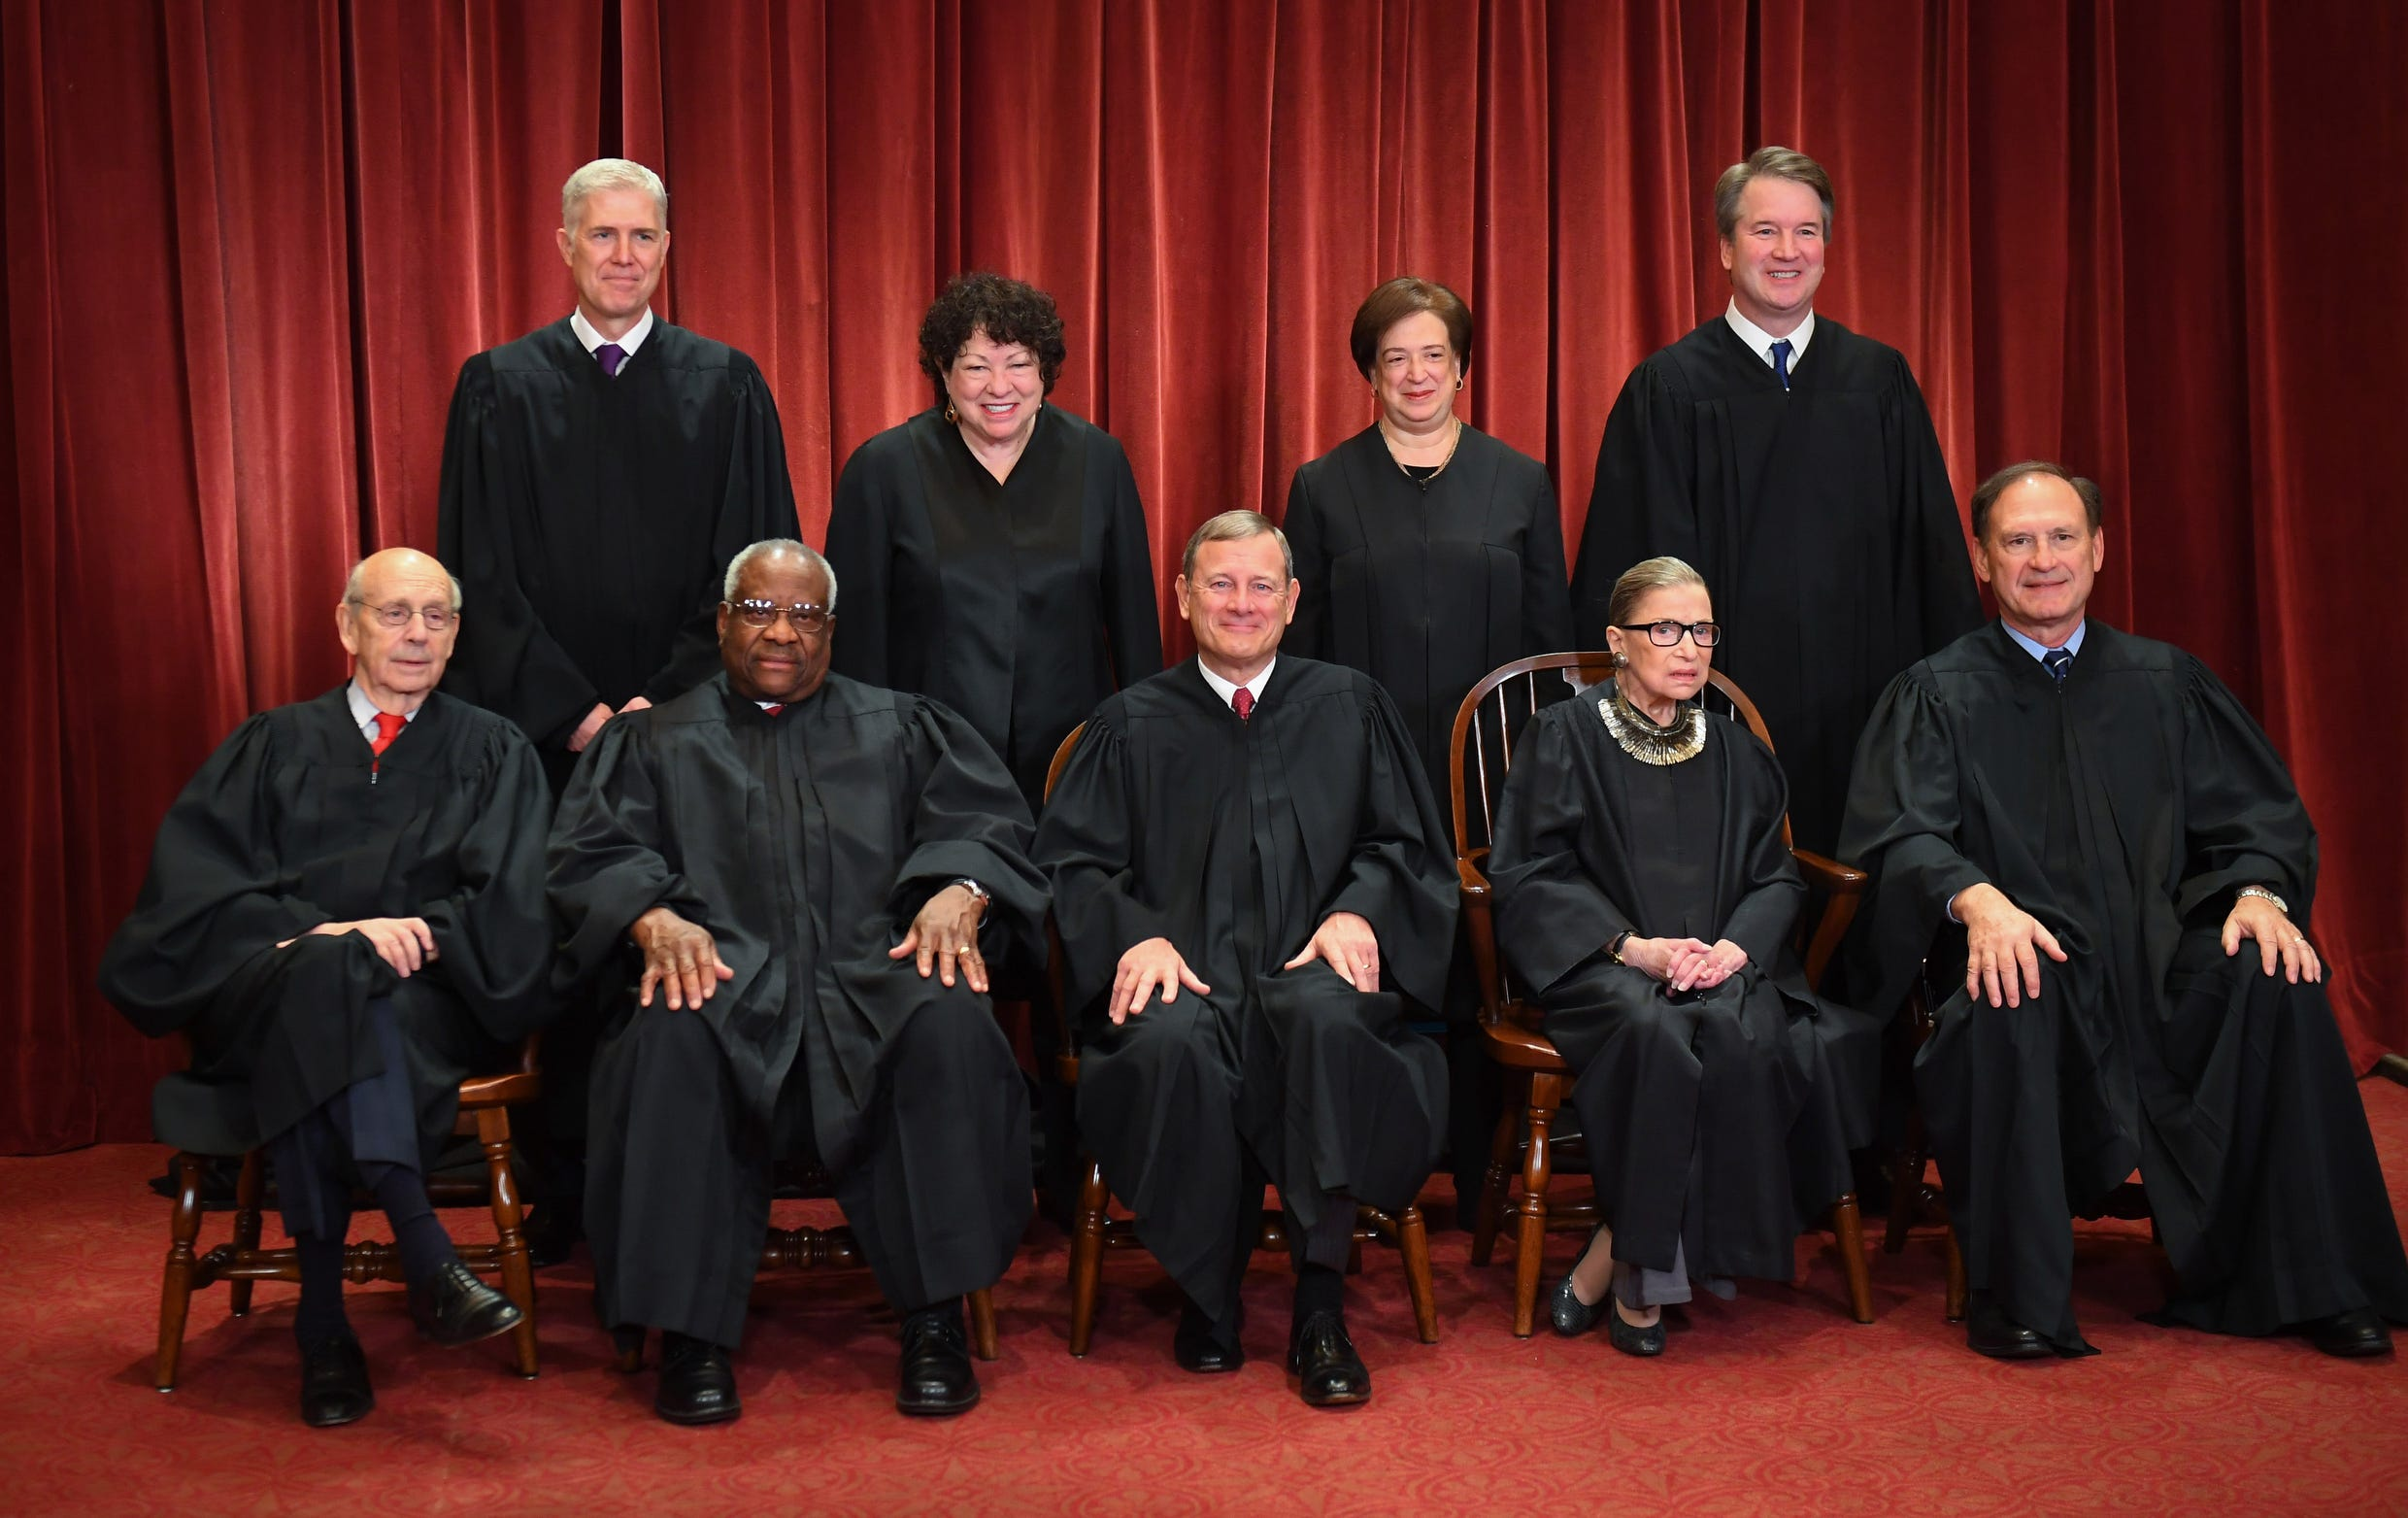 The 2018 Supreme Court Justices